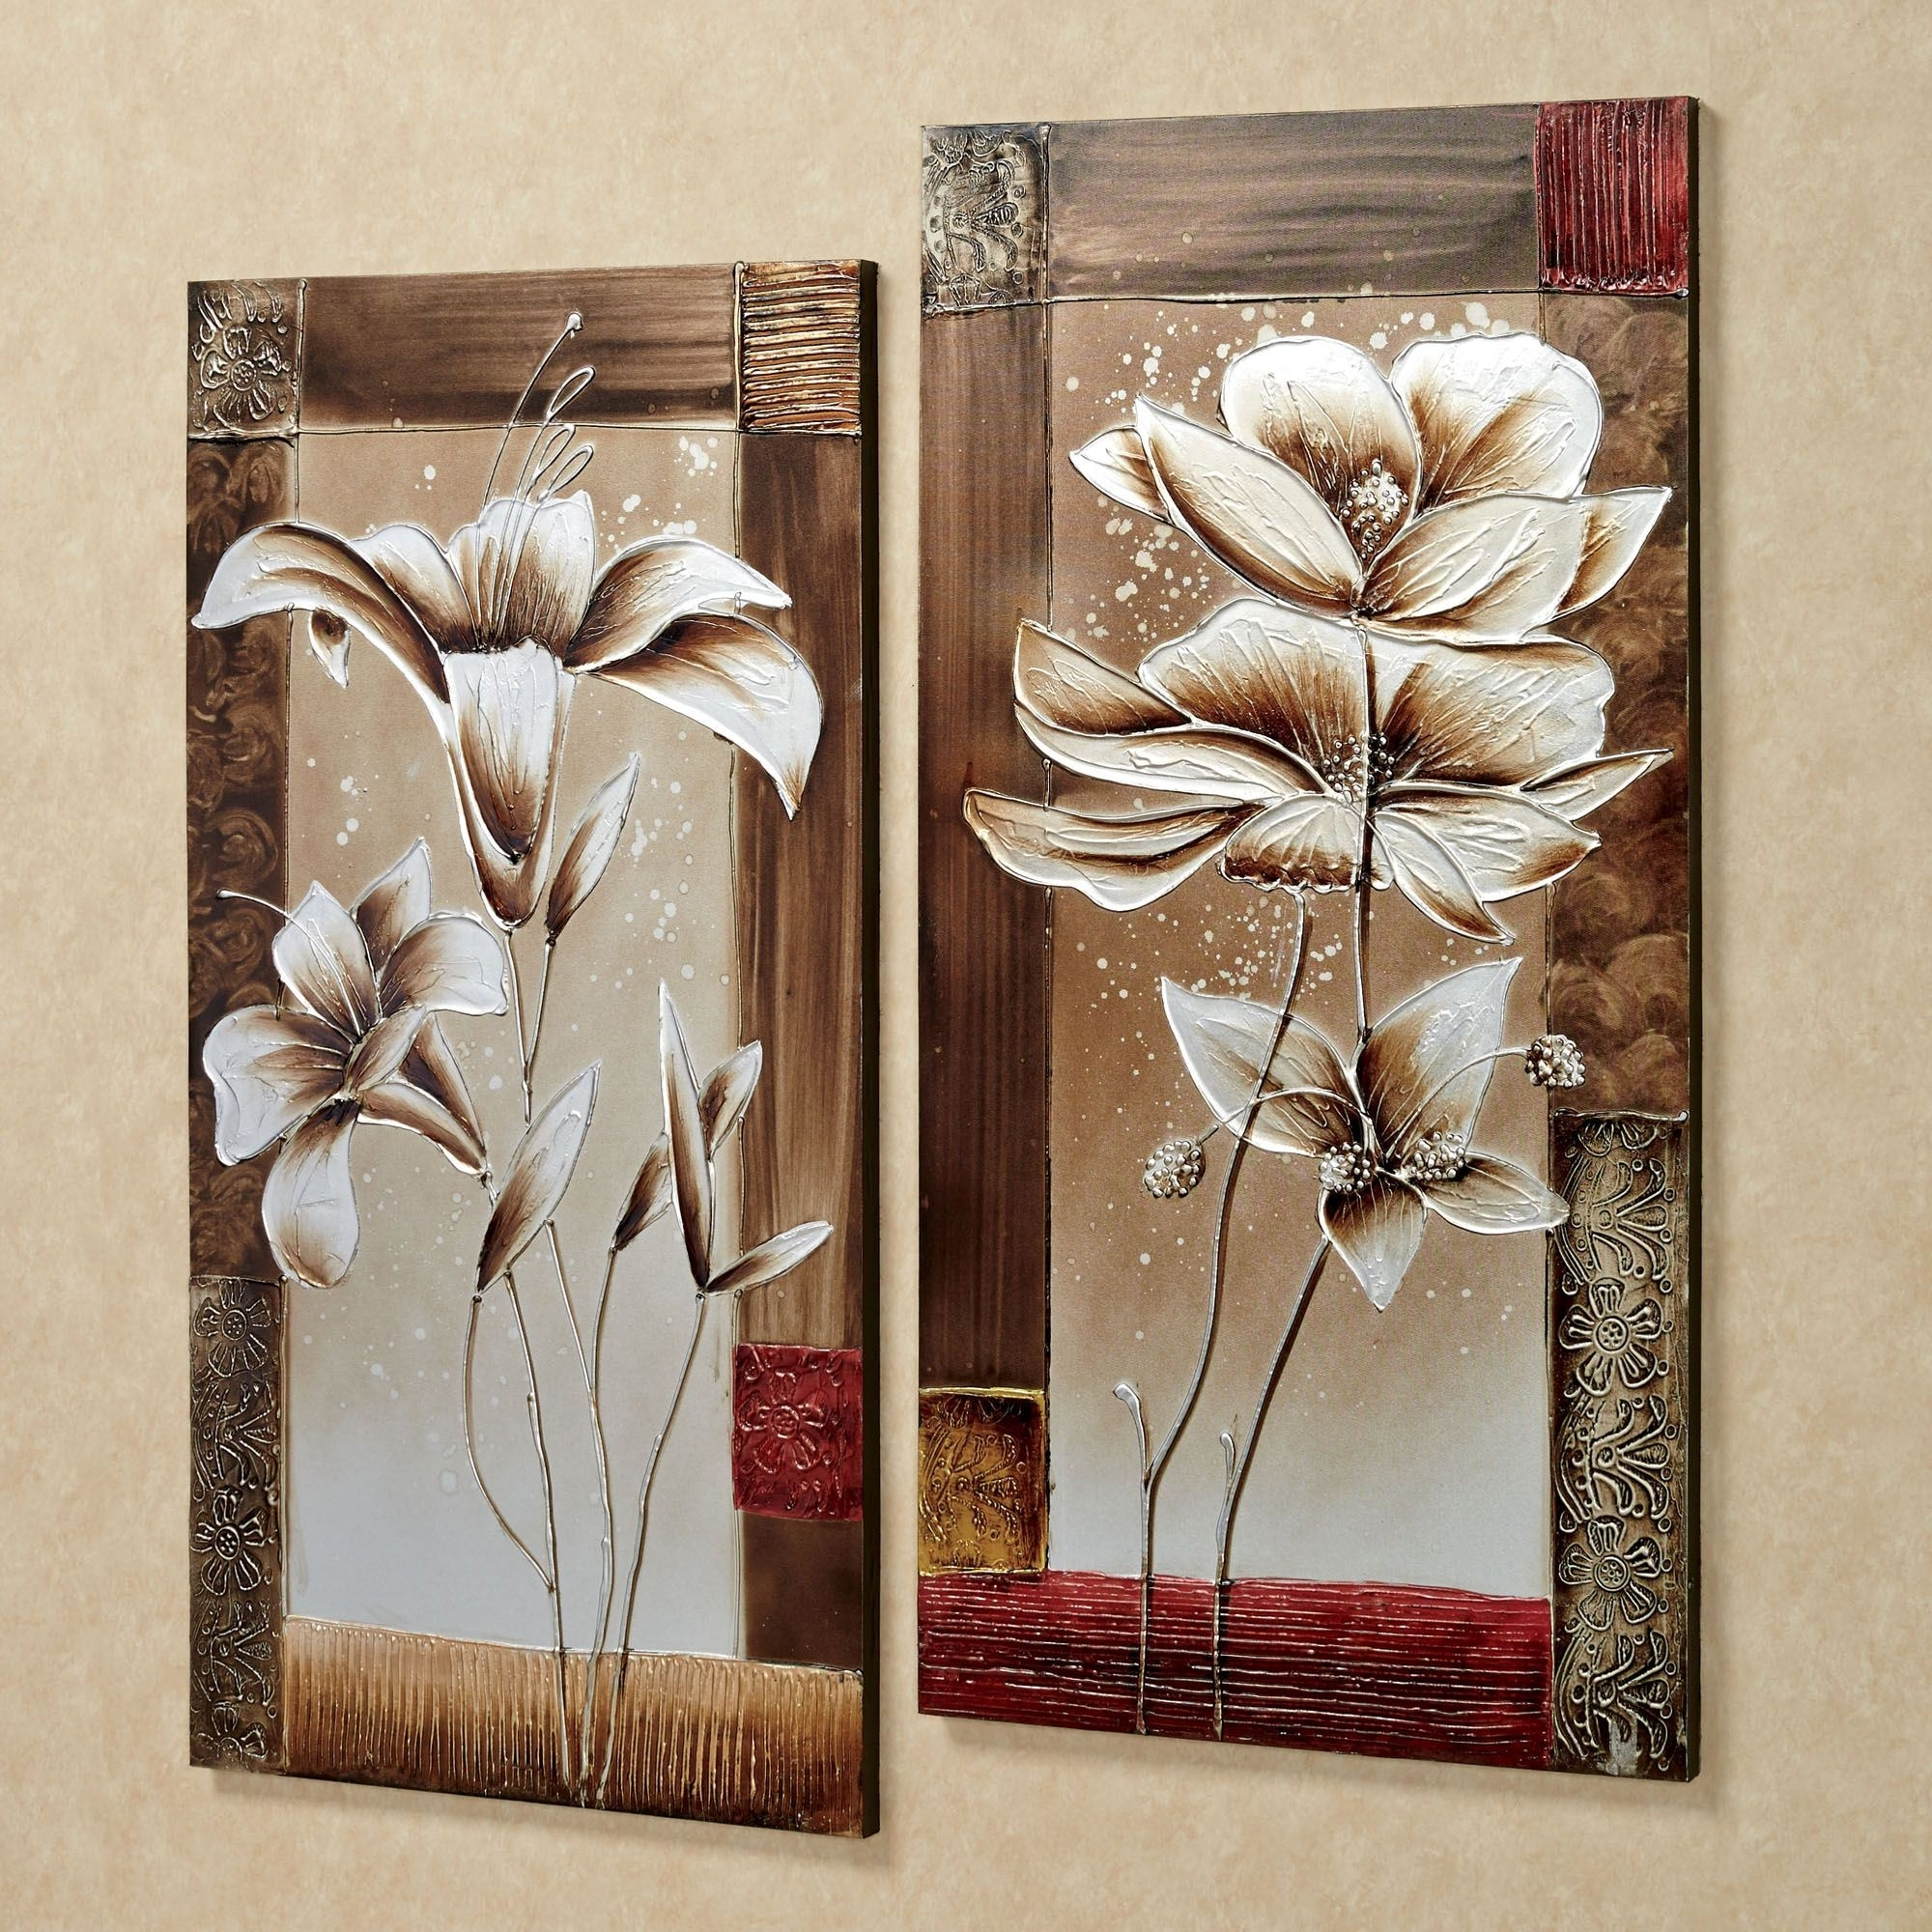 Petals Of Spring Floral Canvas Wall Art Set Within Recent Canvas Wall Art (View 14 of 15)